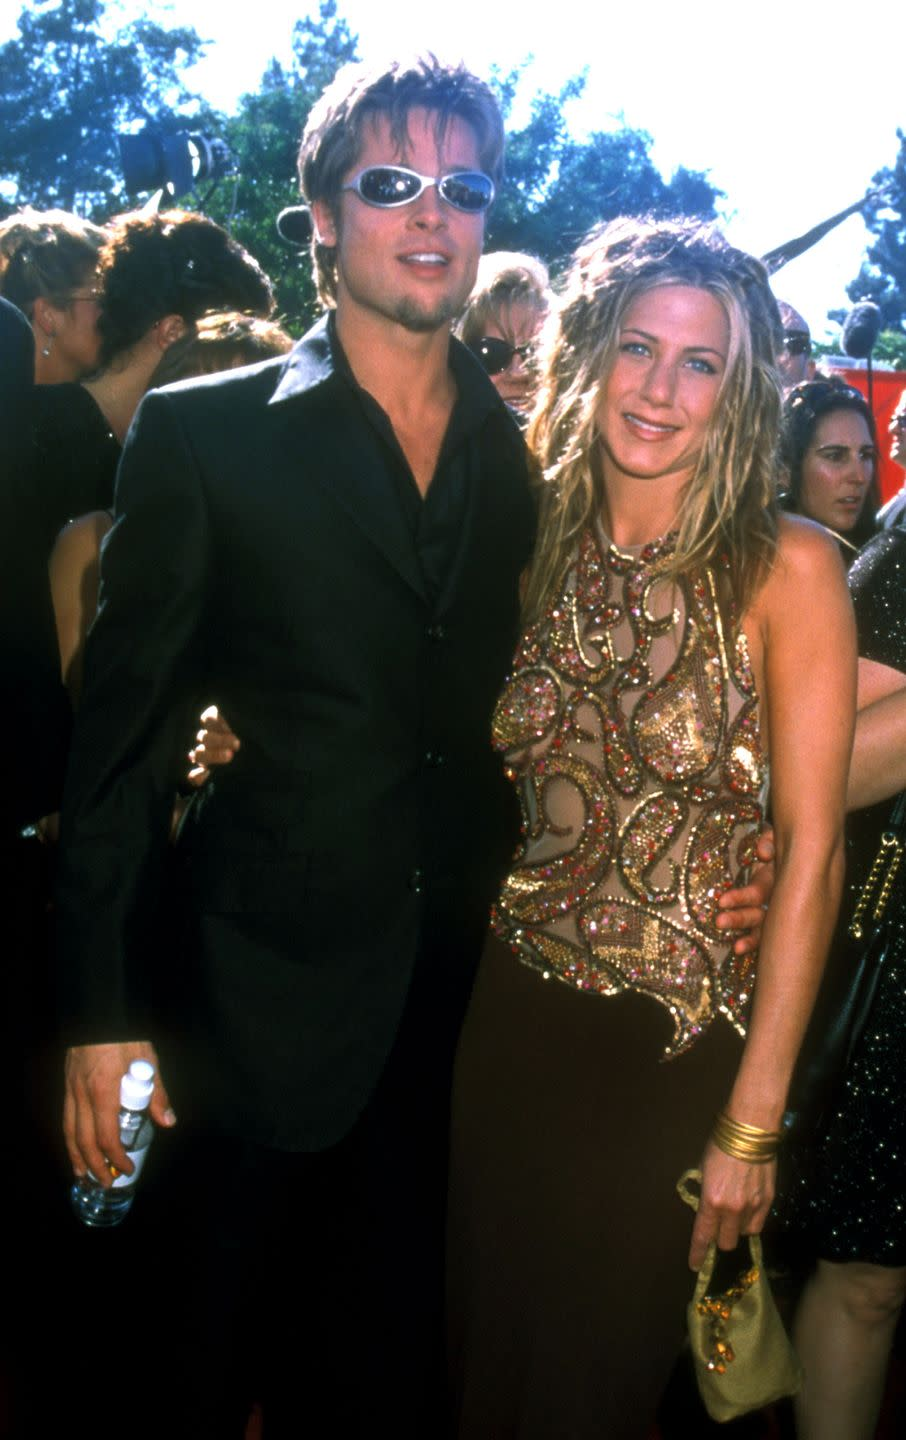 """<p>Before there was Brangelina (RIP), there was Brad and Jennifer. This particular image documents the couple's <a href=""""https://www.marieclaire.com/celebrity/g18655293/brad-pitt-jennifer-aniston-relationship-timeline/"""" rel=""""nofollow noopener"""" target=""""_blank"""" data-ylk=""""slk:red carpet debut"""" class=""""link rapid-noclick-resp"""">red carpet debut</a> at the 1999 Emmy Awards.</p>"""